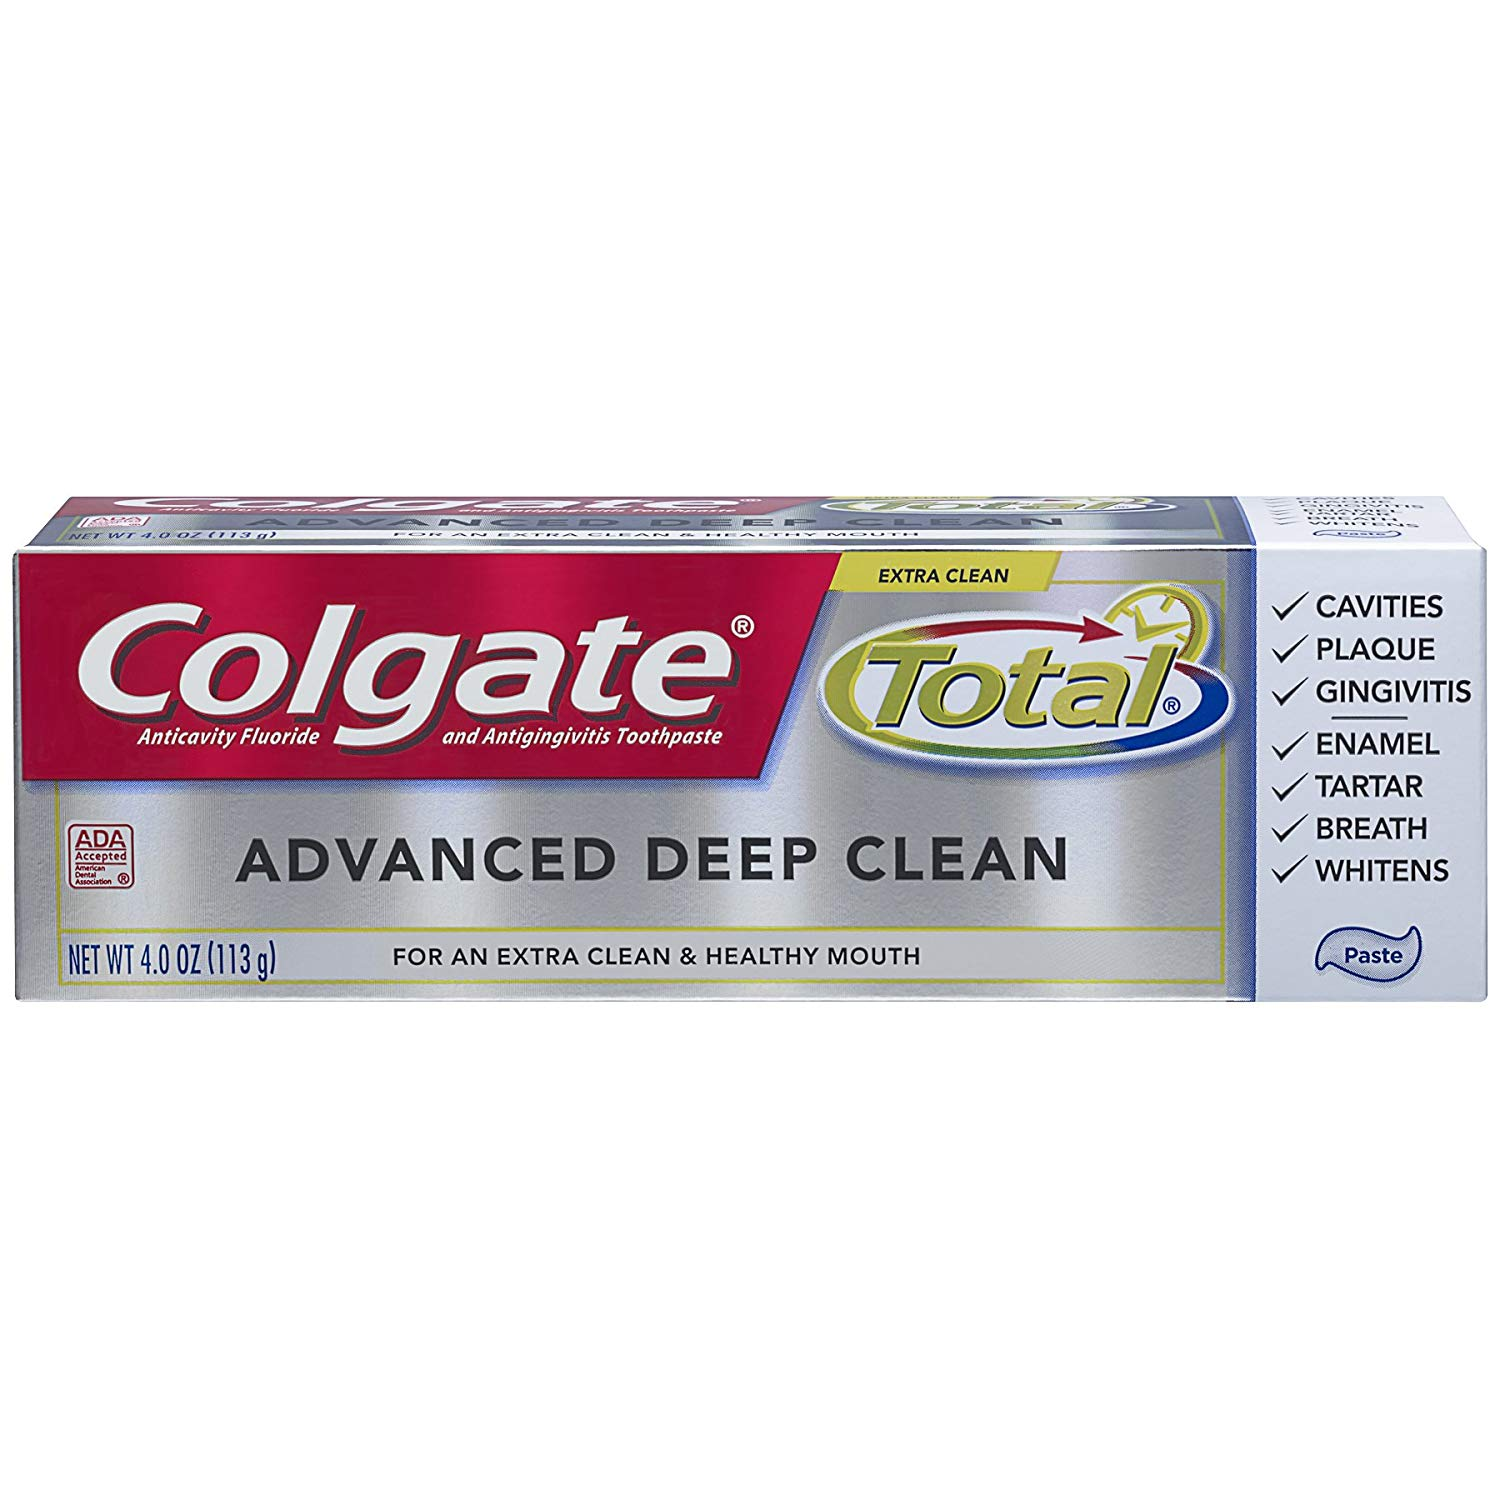 Colgate Dentifrice Colgate Total Advanced Deep Clean - 4 oz